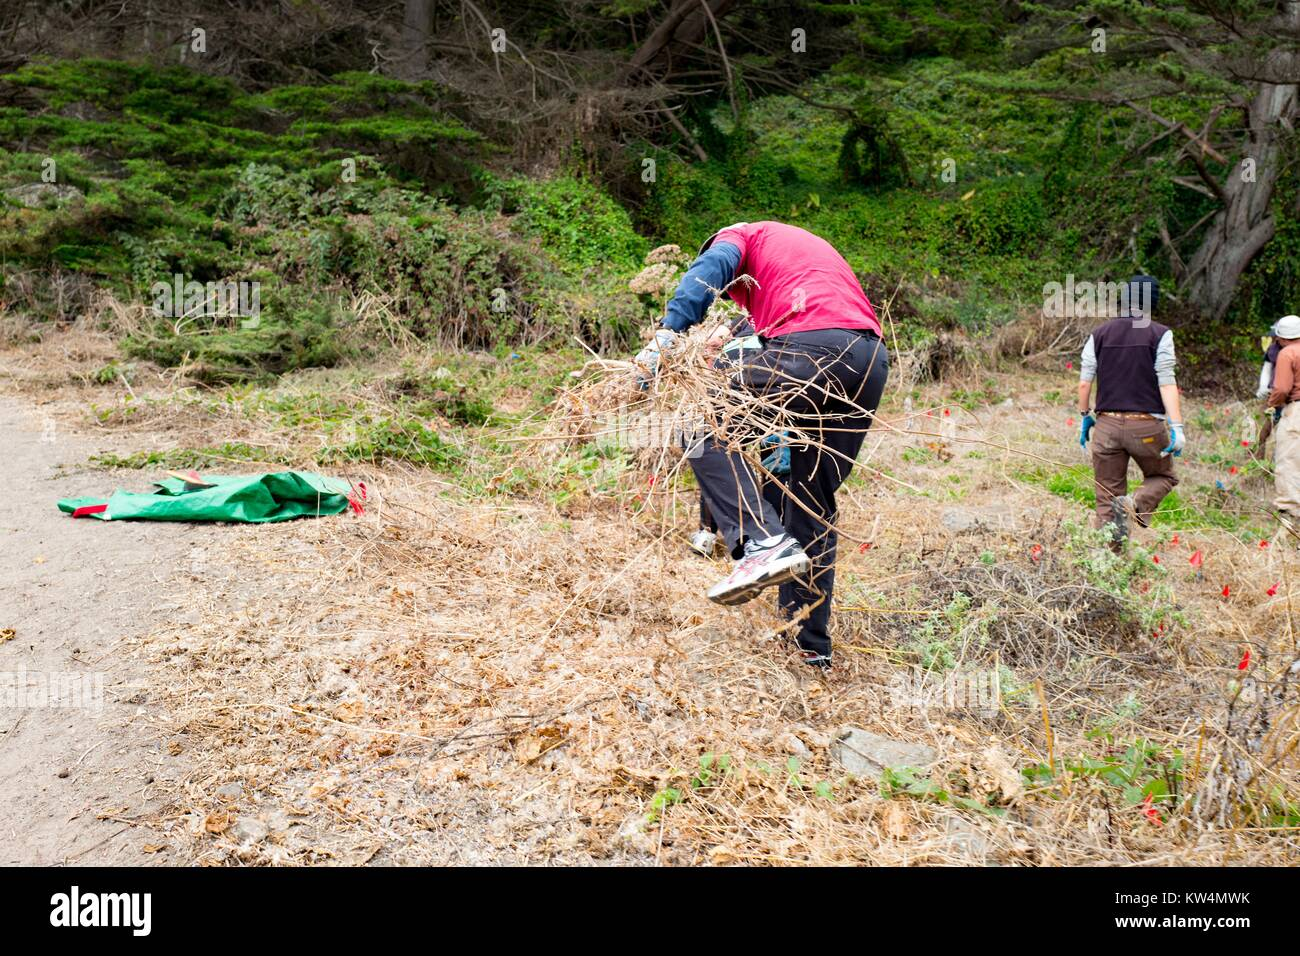 Volunteers perform trail cleanup along Coastal Trail in the Lands End neighborhood of San Francisco, California, - Stock Image